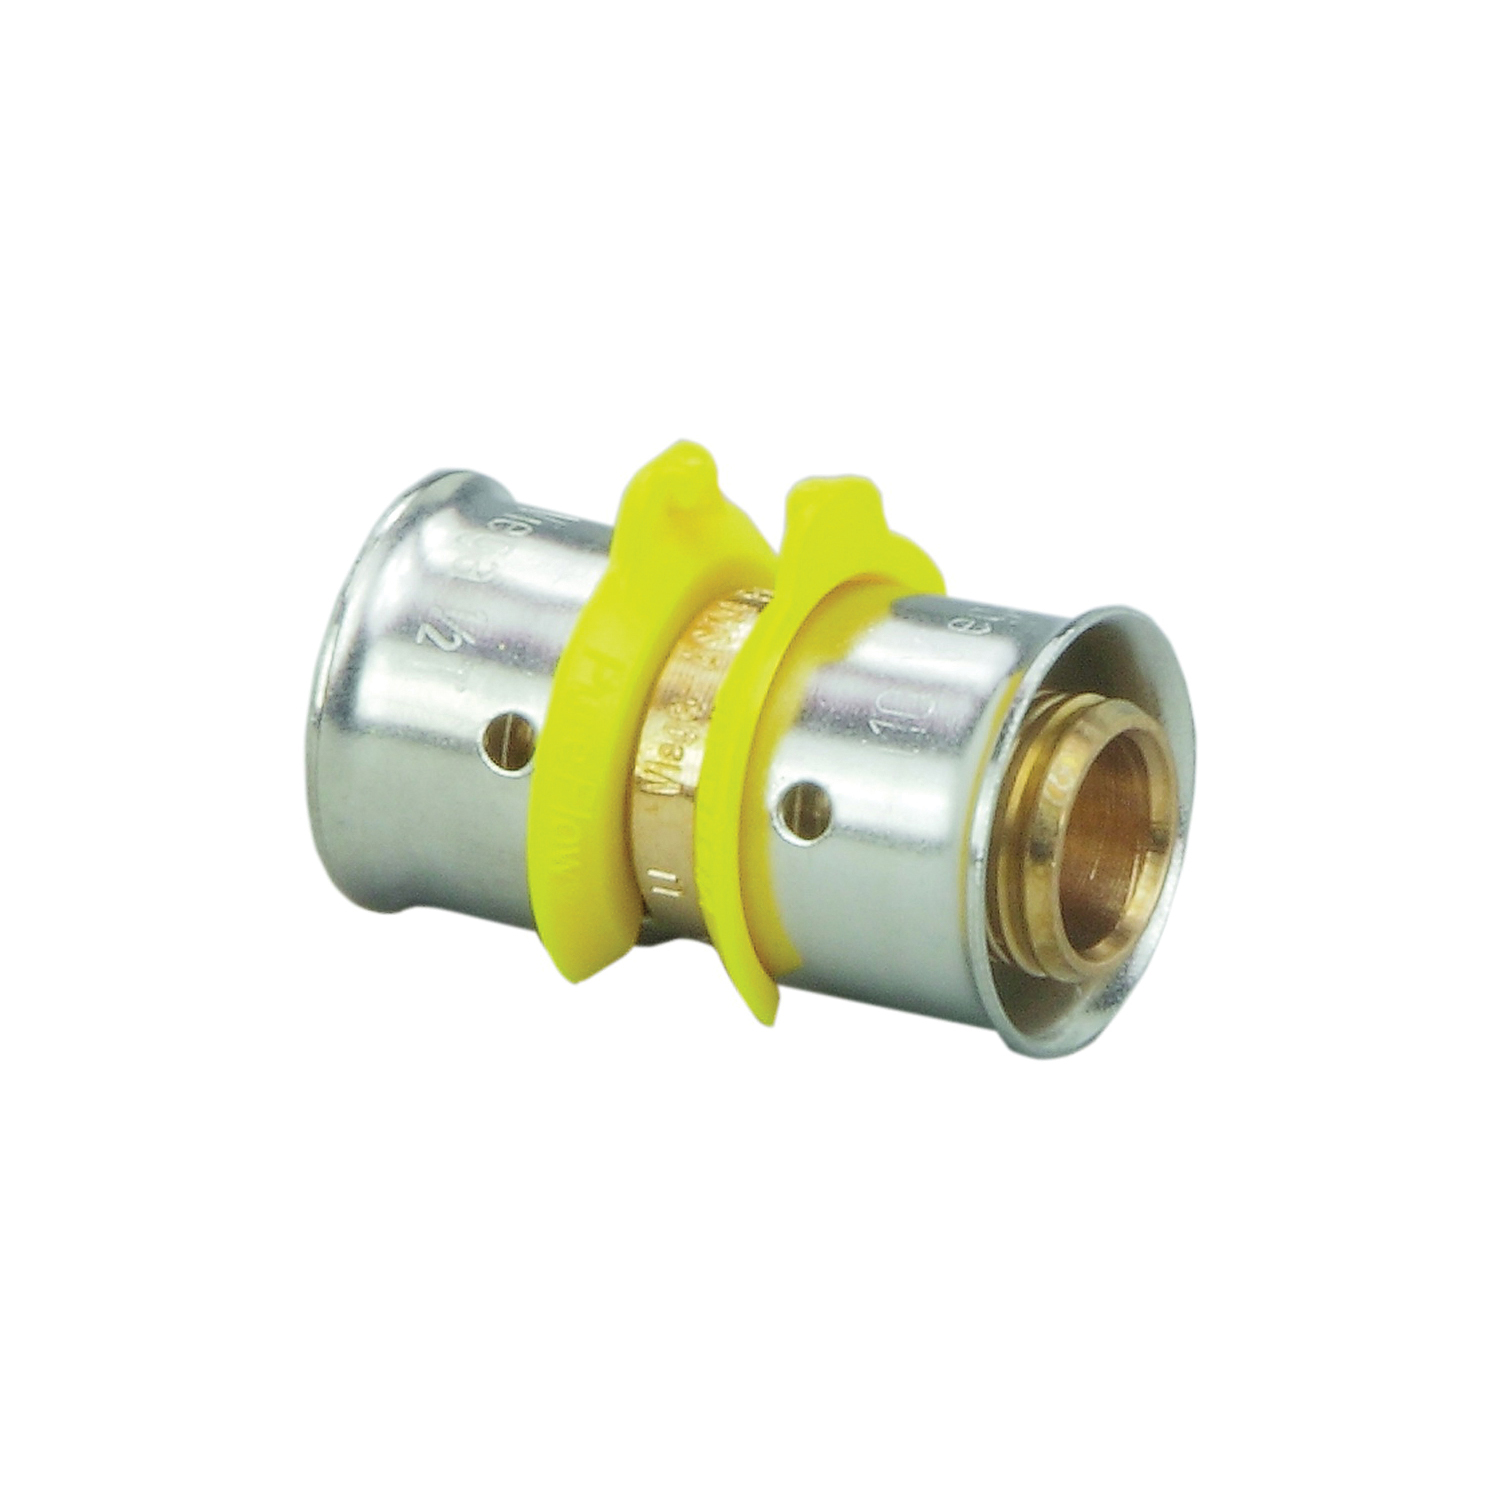 Viega PureFlow® 93073 Model 2815ZL Reducing Coupling, 1 x 1-1/2 in Nominal, PEX Press® End Style, Bronze, Import